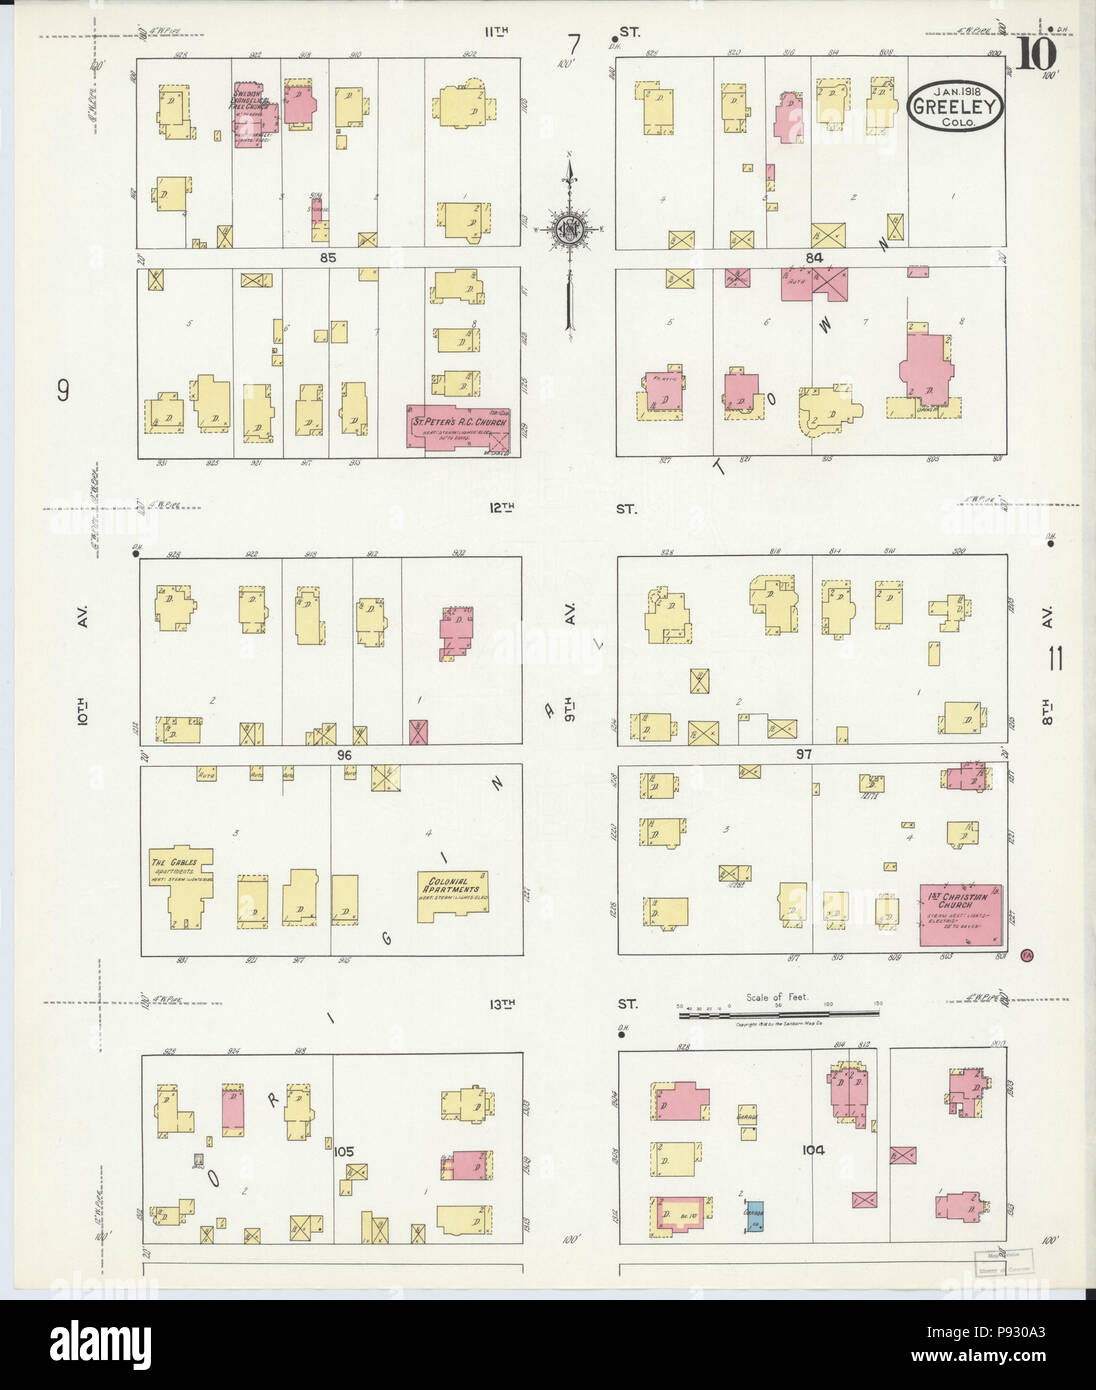 499 Sanborn Fire Insurance Map From Greeley Weld County Colorado